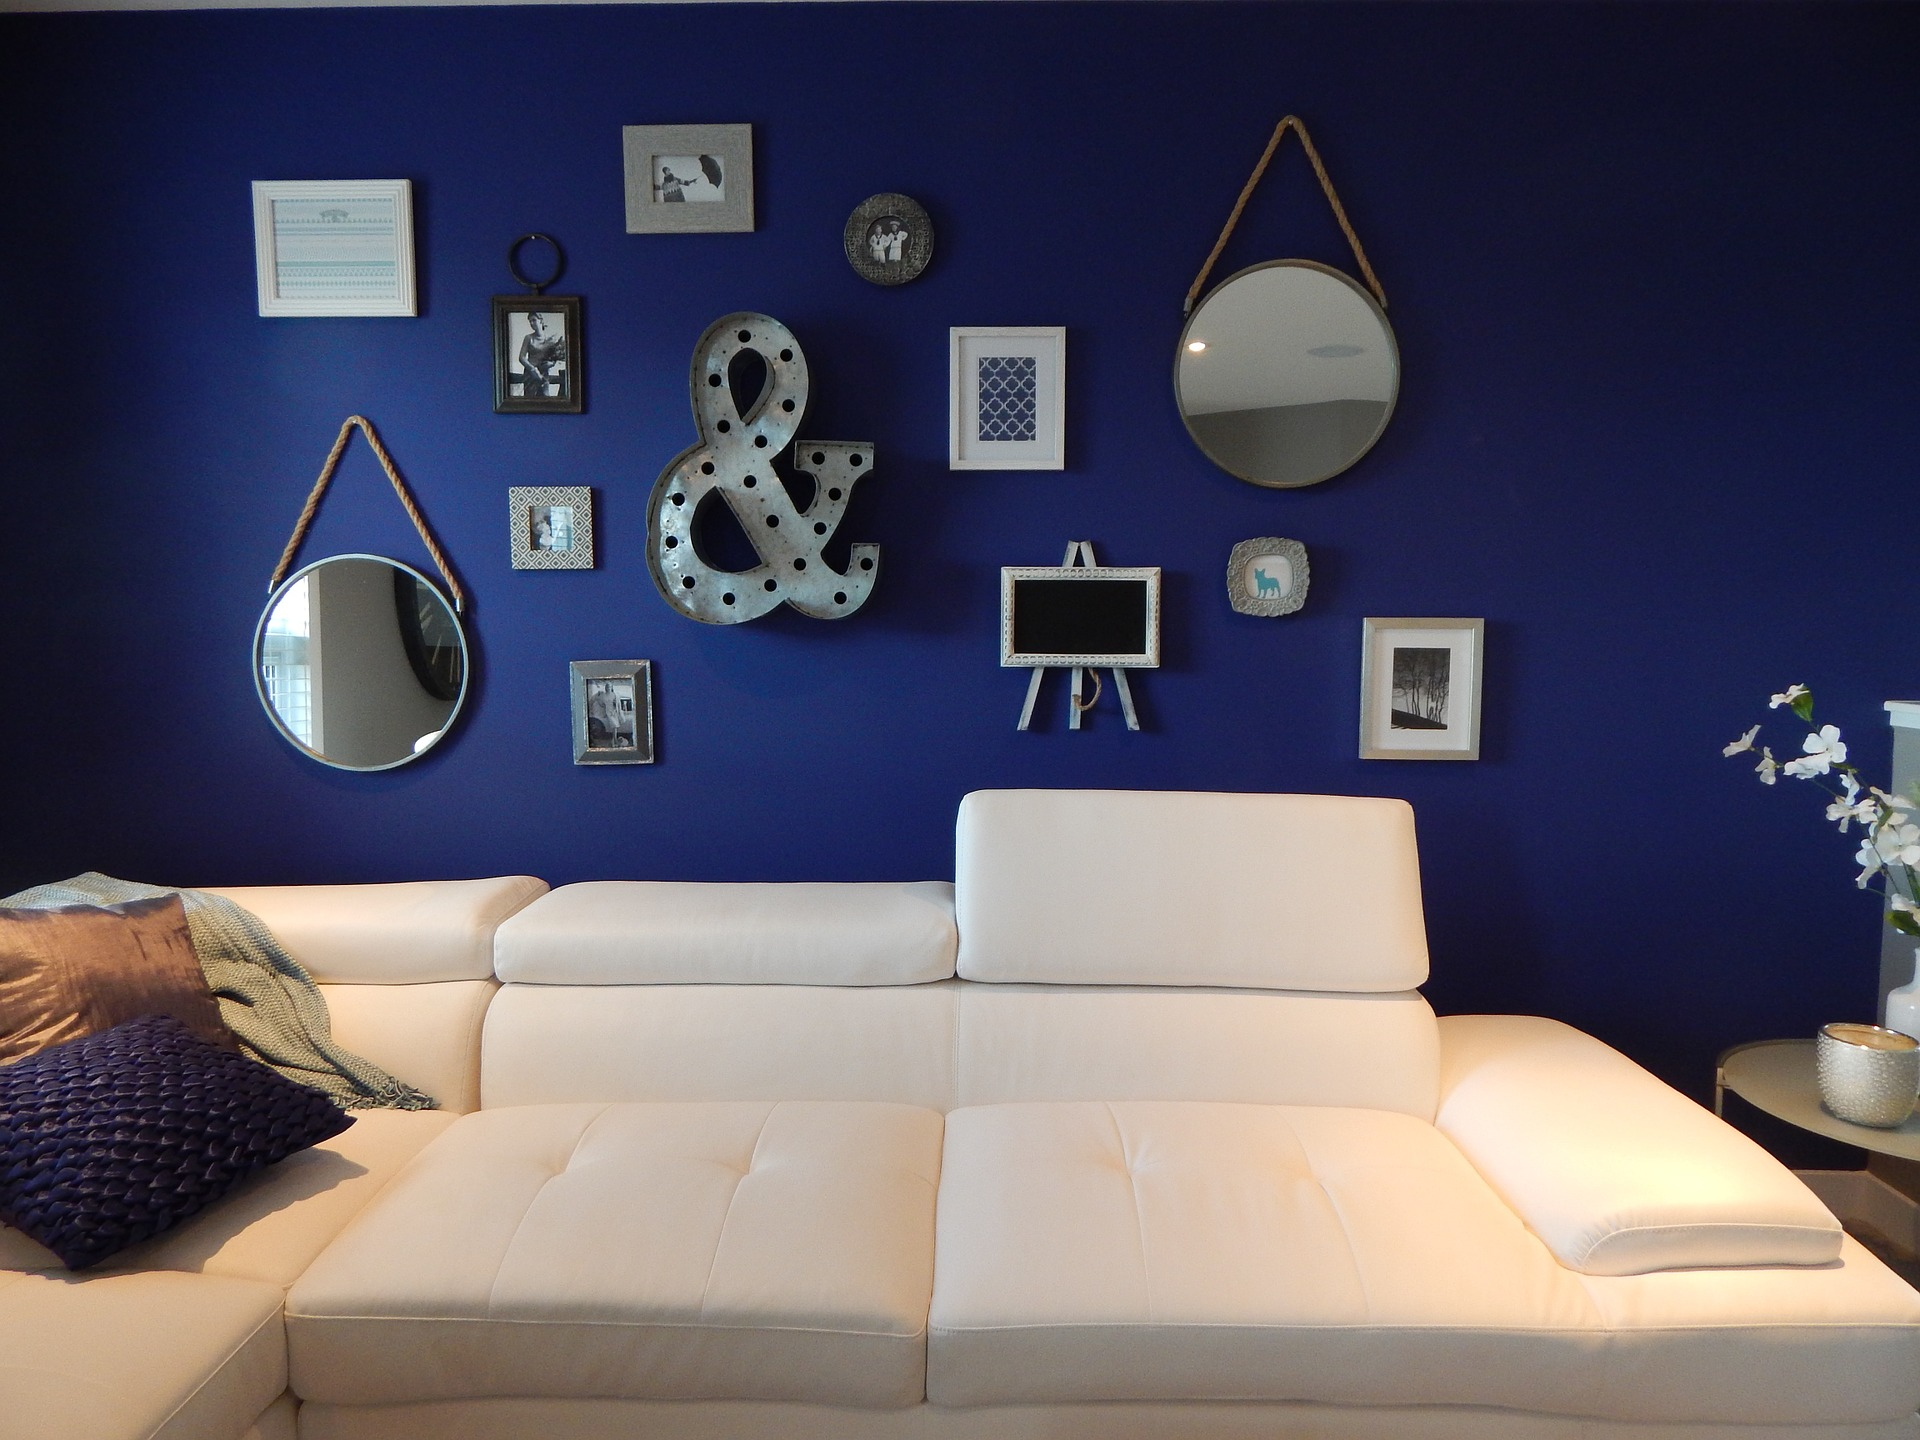 Hang mirrors on a wall to bounce light and create a decorative feature